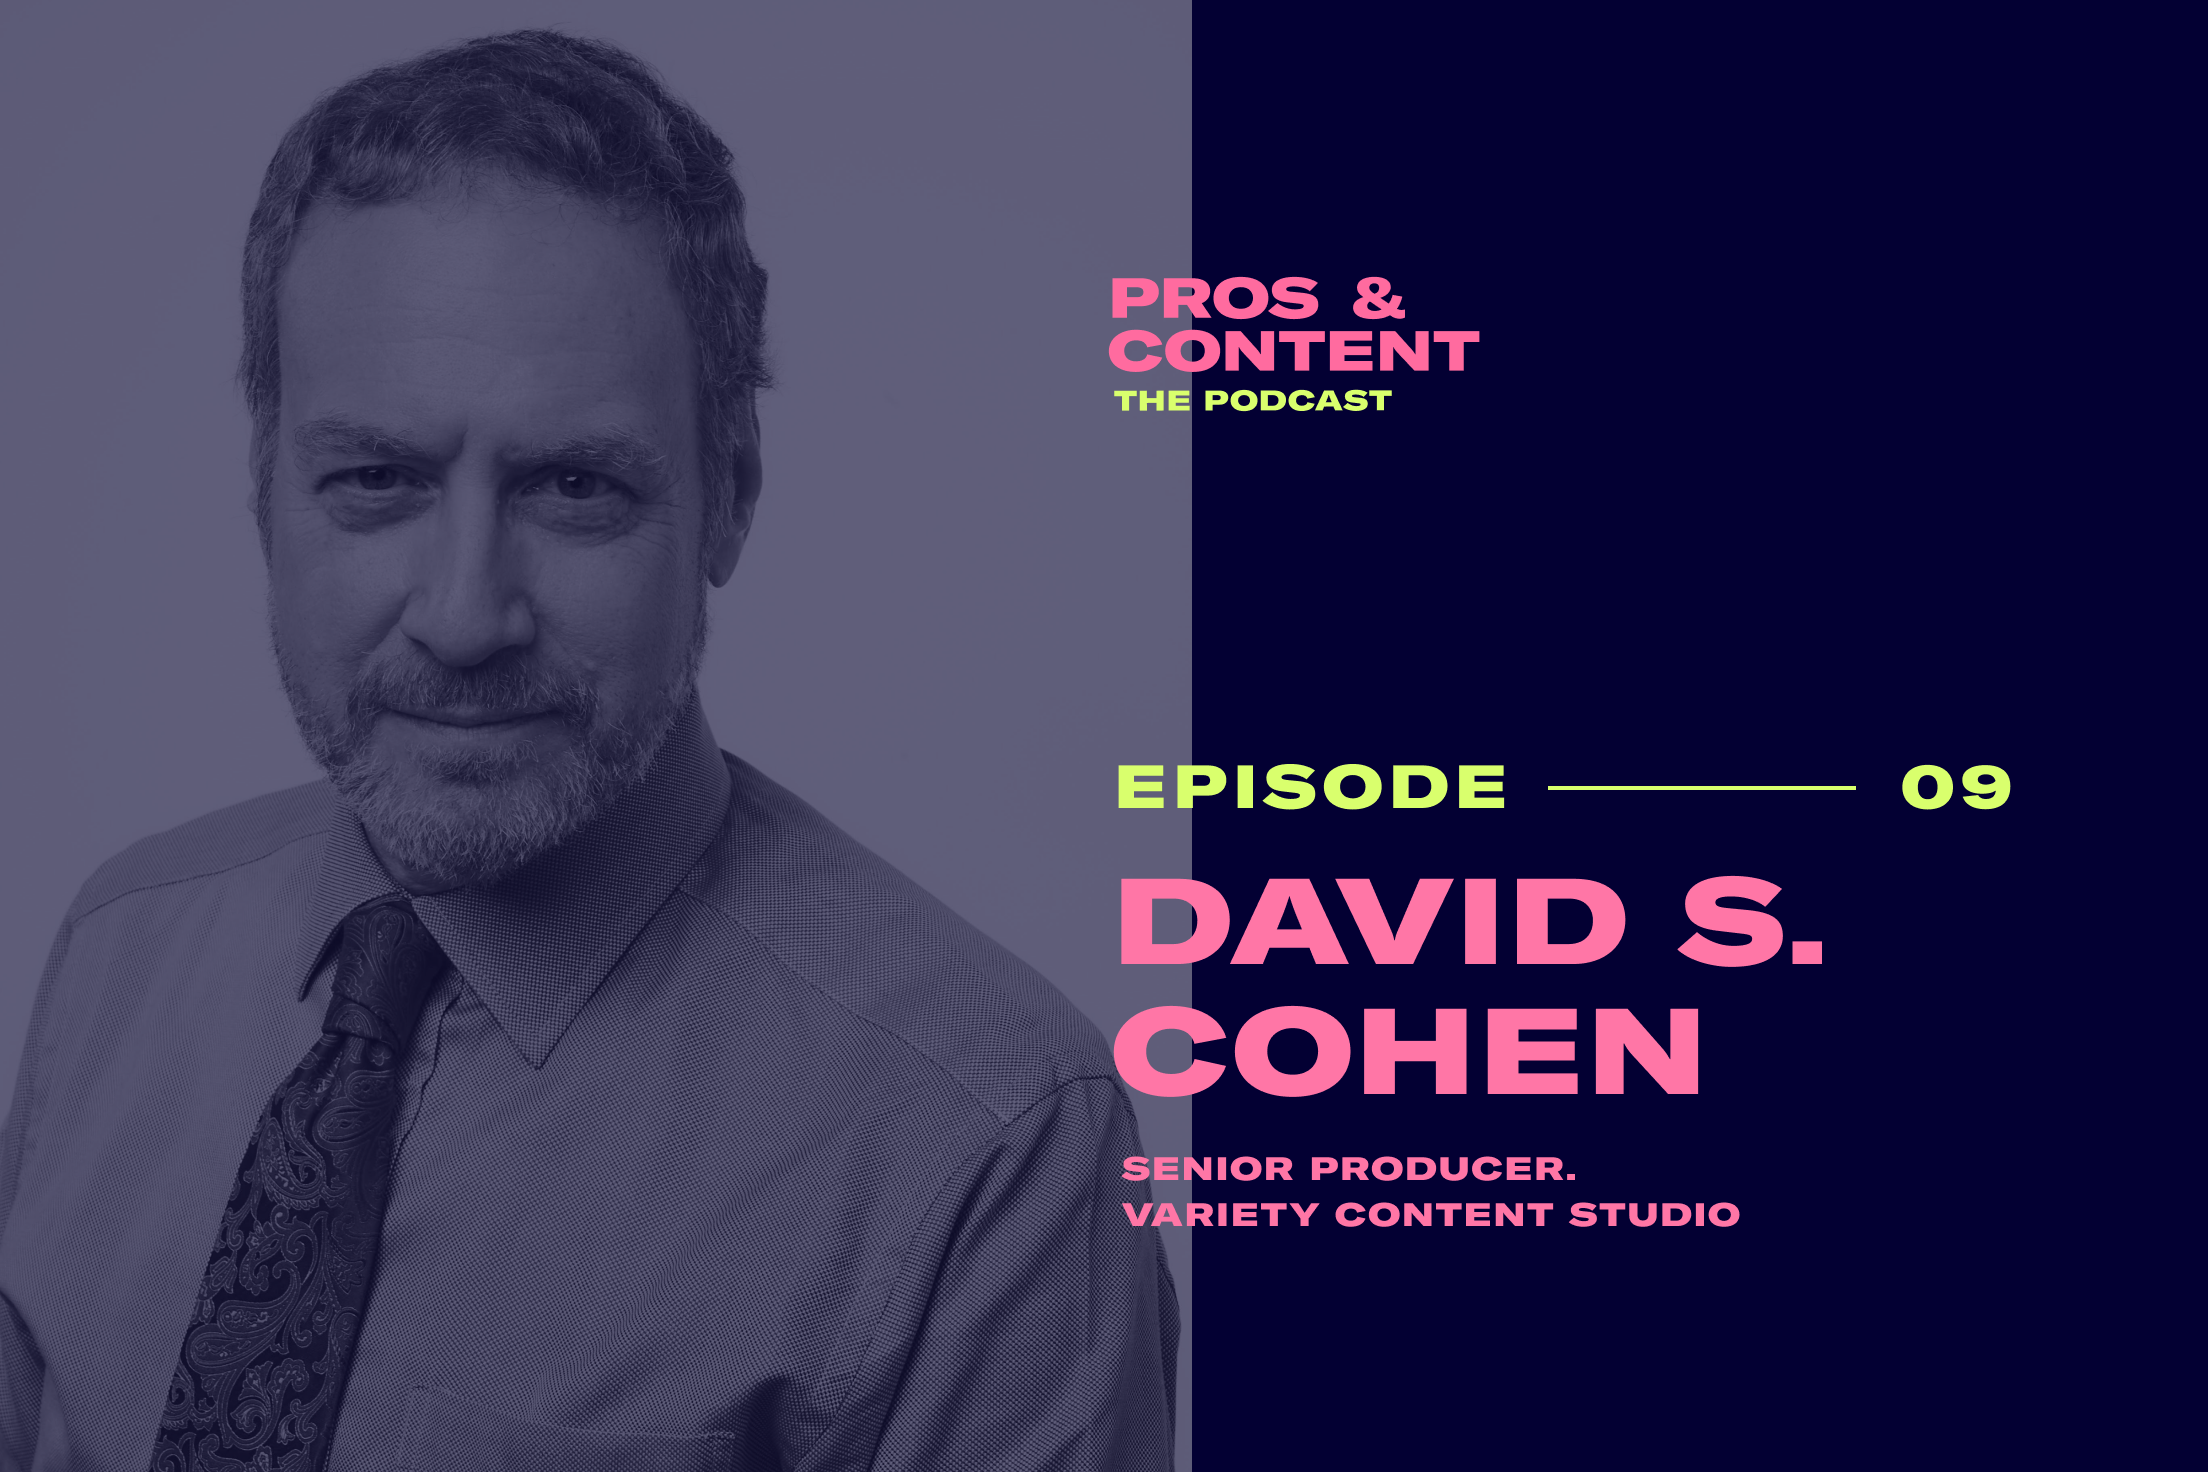 Pros & Content Podcast: David S. Cohen On Branded Content Marketing